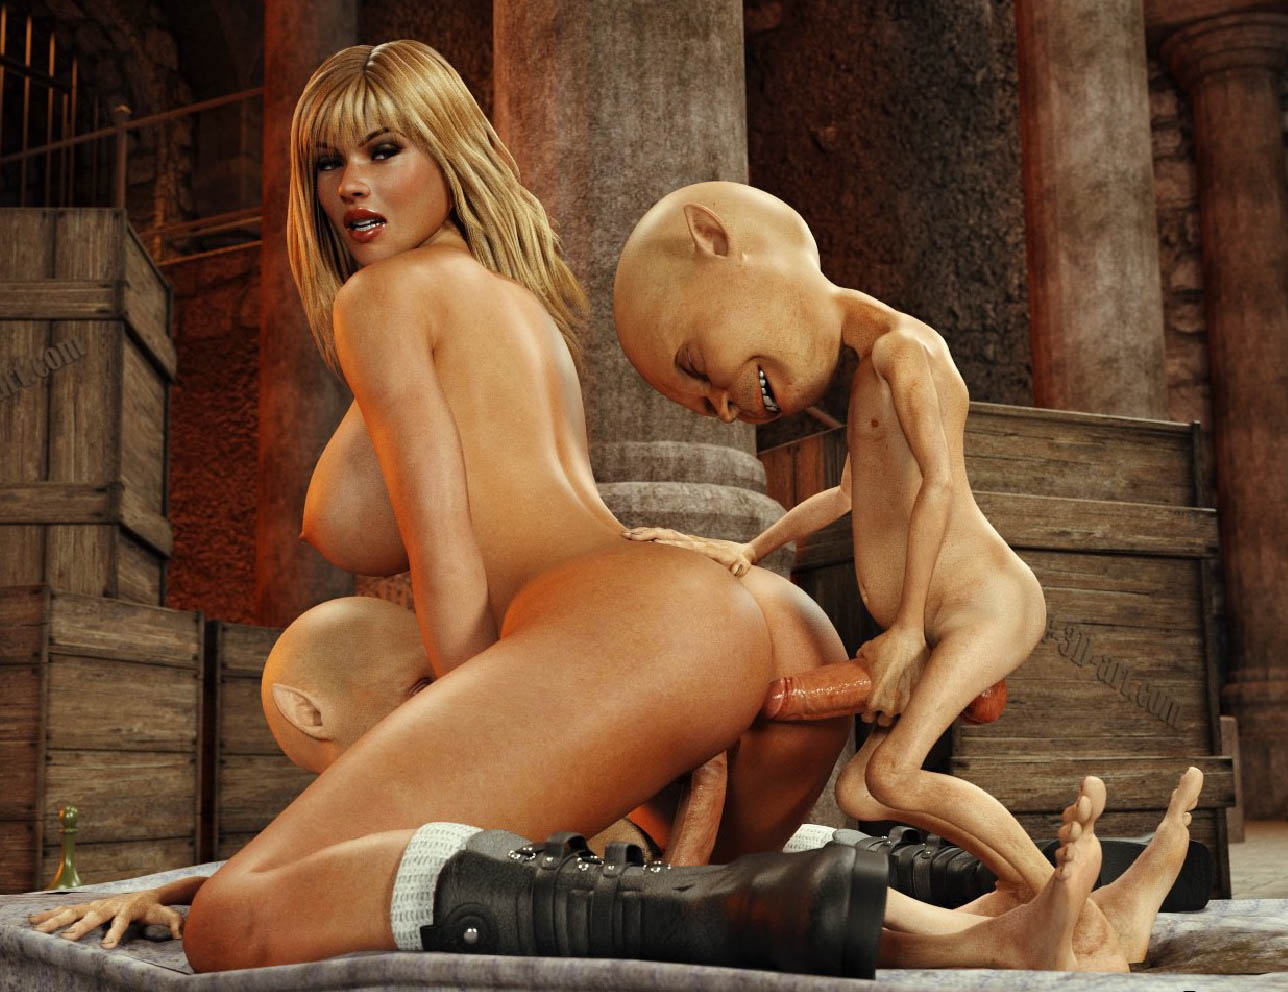 Laura croft get banged by monsters nackt scene